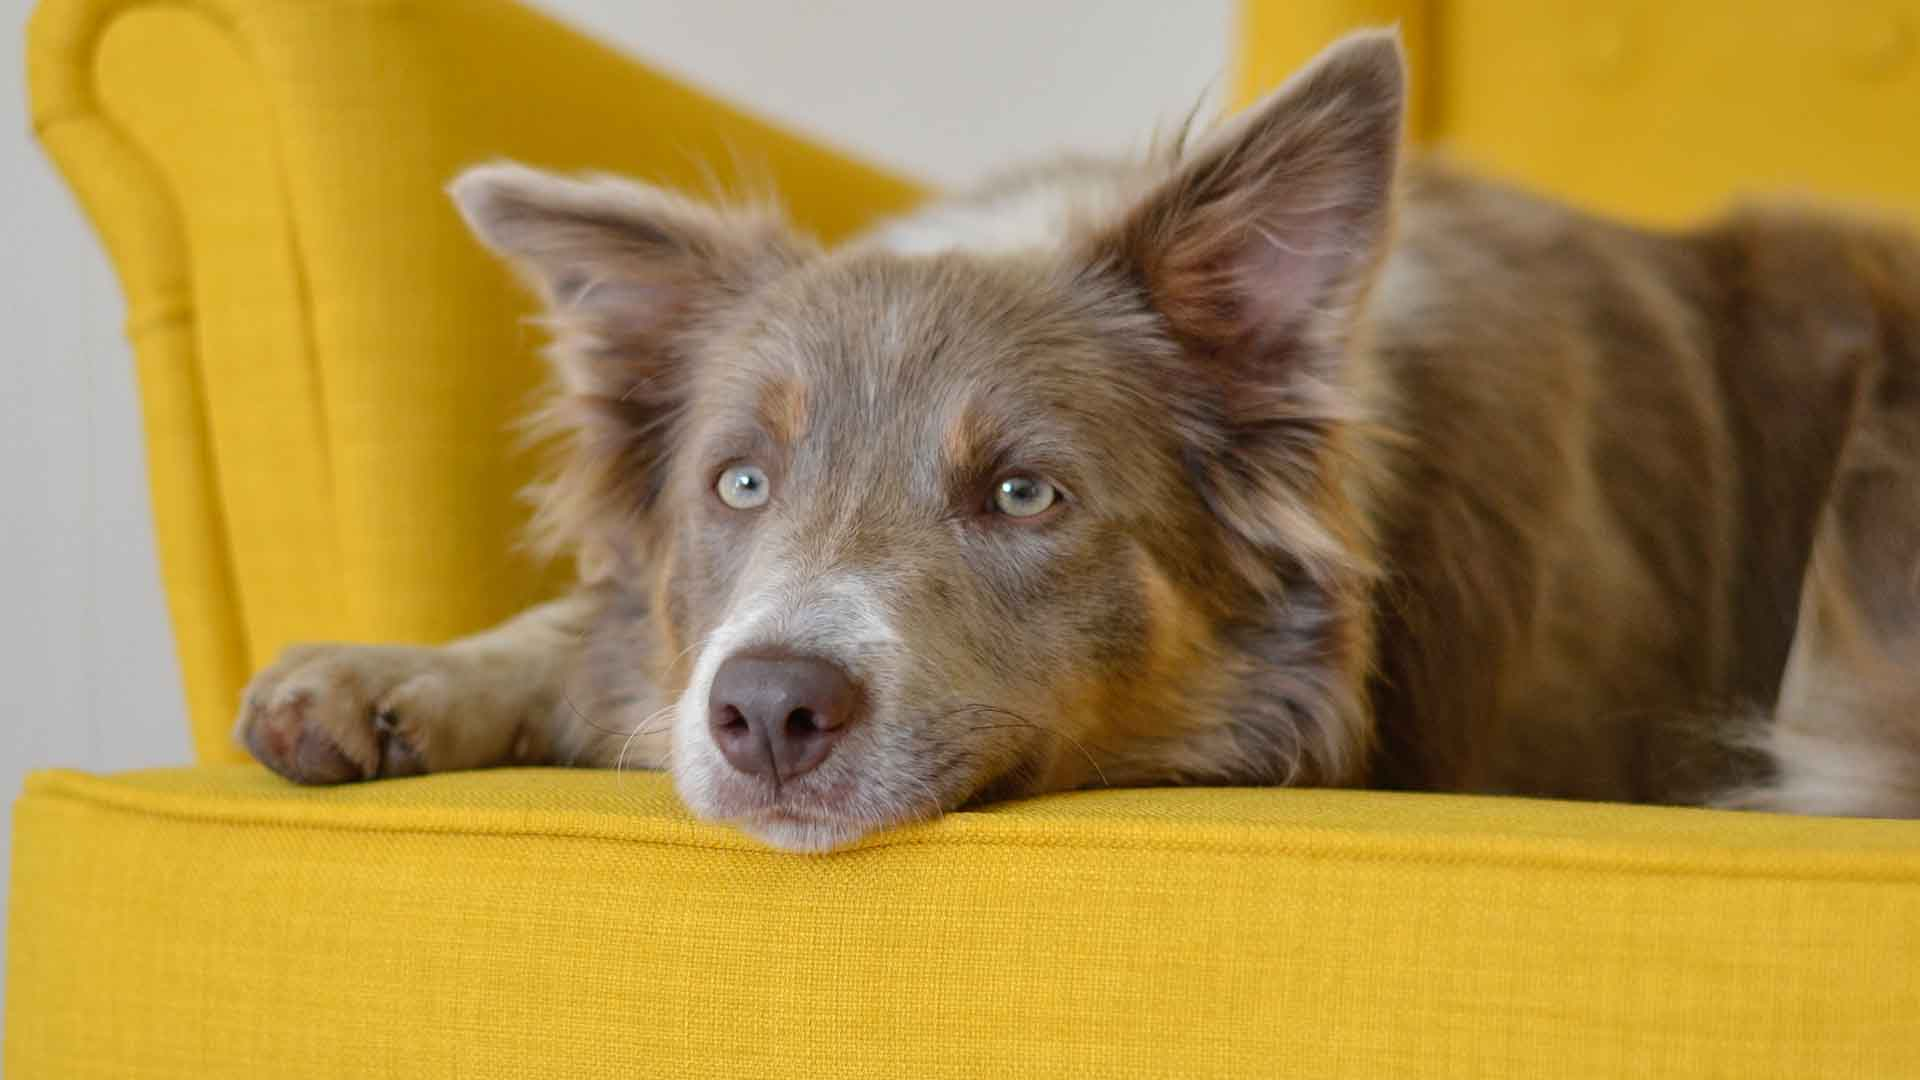 Best Couches For Dog 2021: Reviews & Buyer's Guide